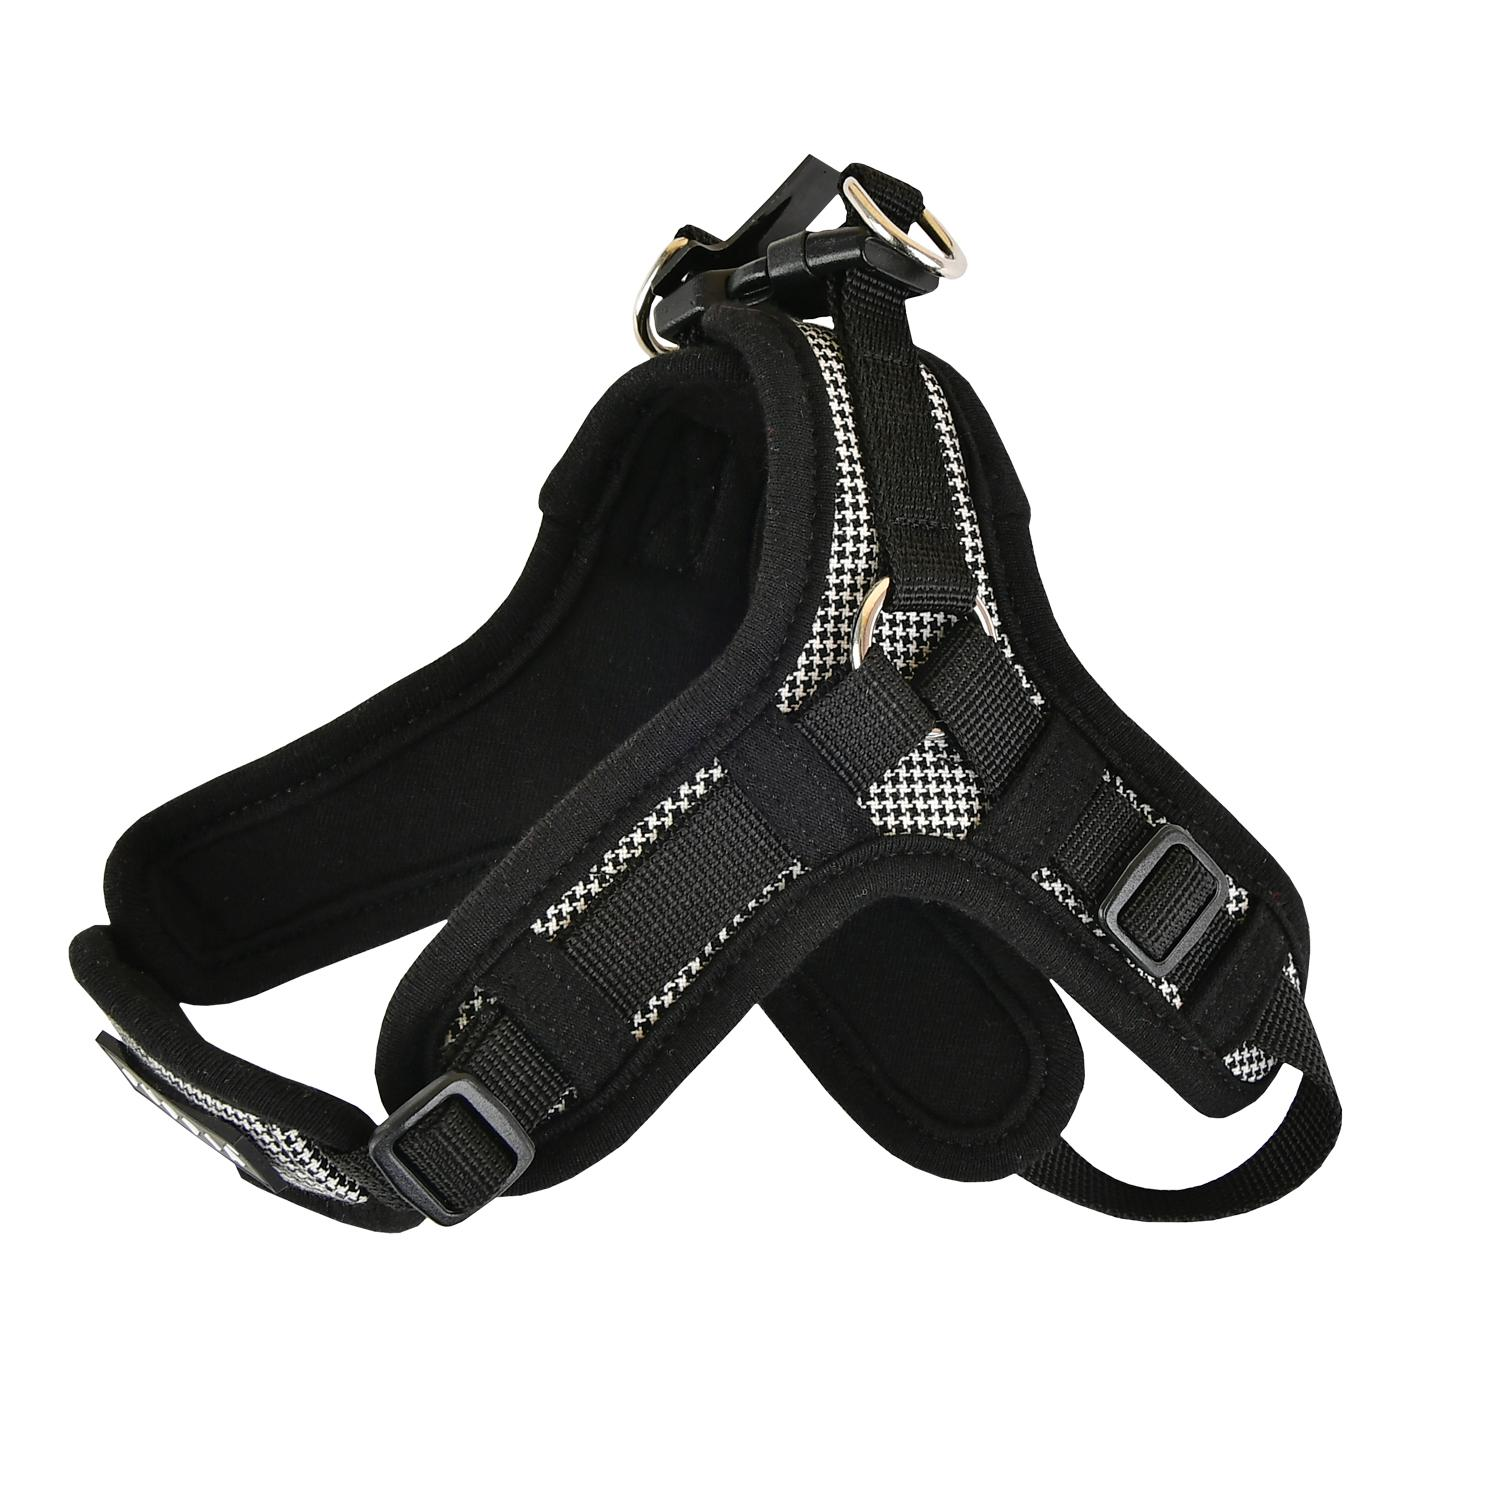 Puppytooth X Dog Harness By Puppia - Black